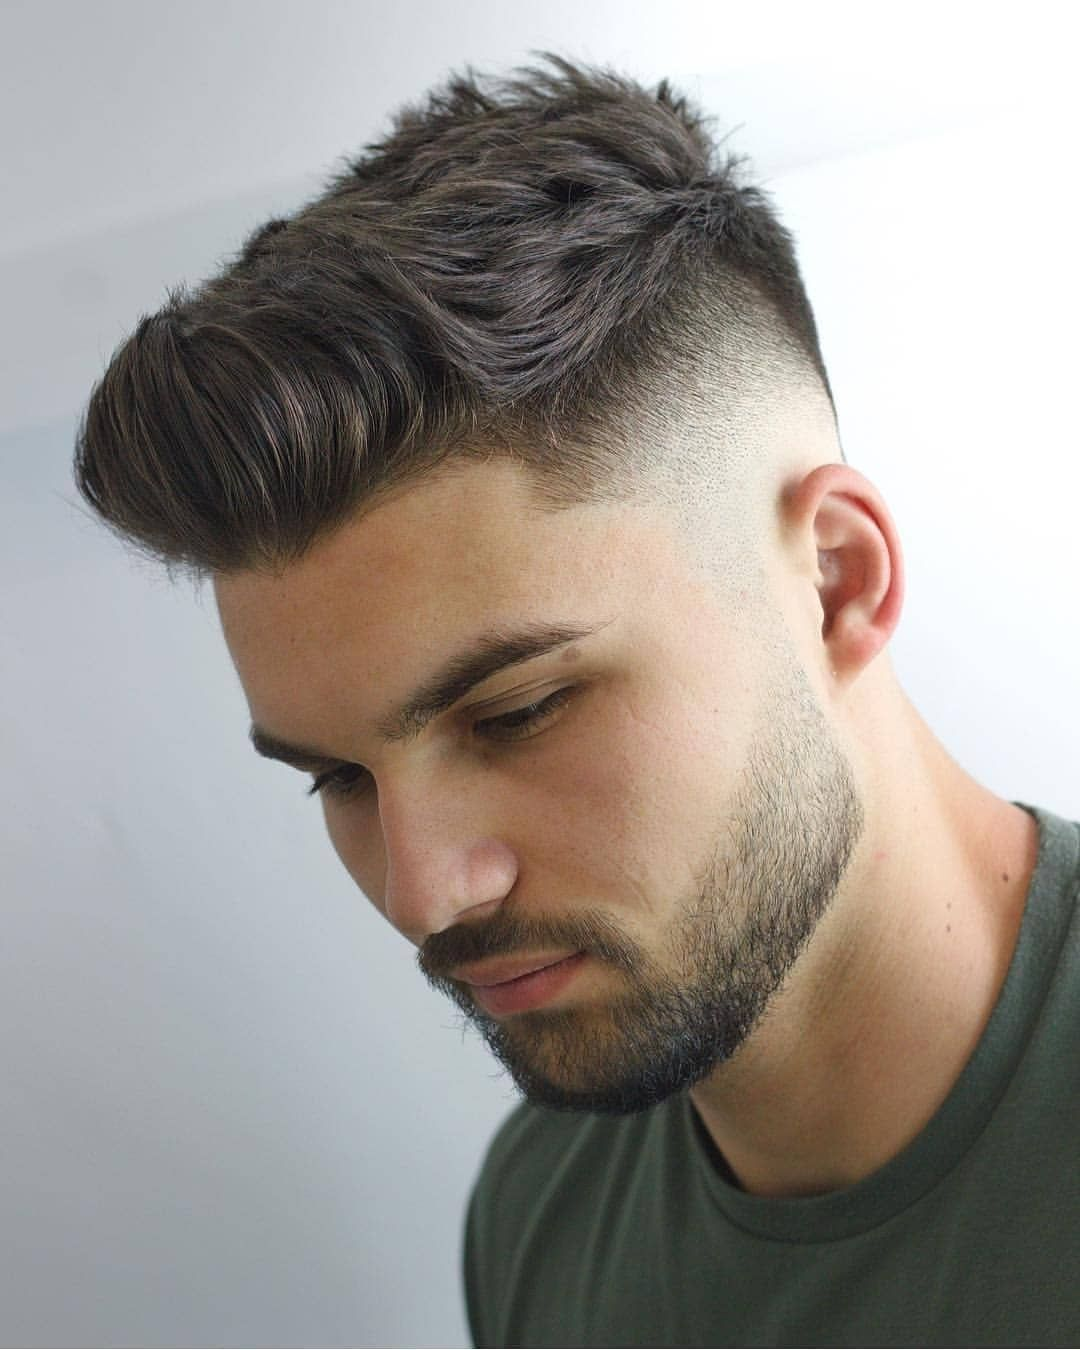 Cool 54 Cool Beard Styles For Handsome Men In This Year Http Klambeni Com Index Php 2019 01 02 54 Faded Beard Styles Beard Styles For Men Beard Styles Short